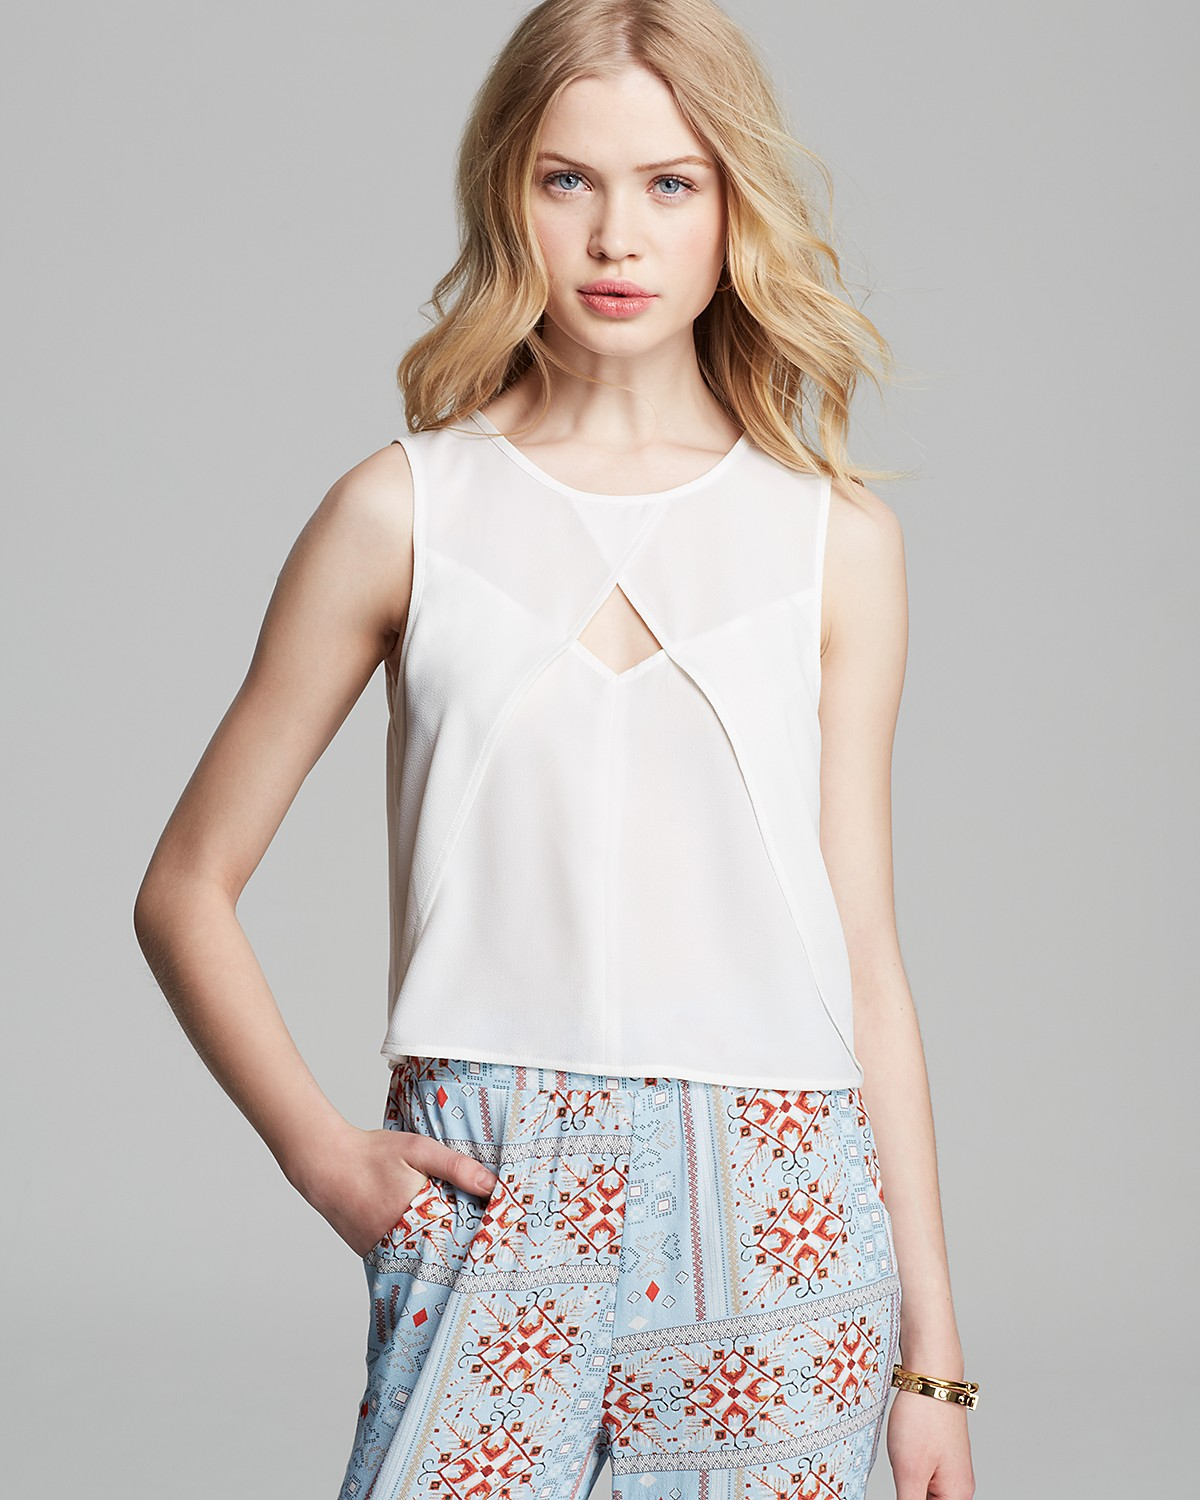 MINKPINK Top - Ray of Light | Bloomingdale's